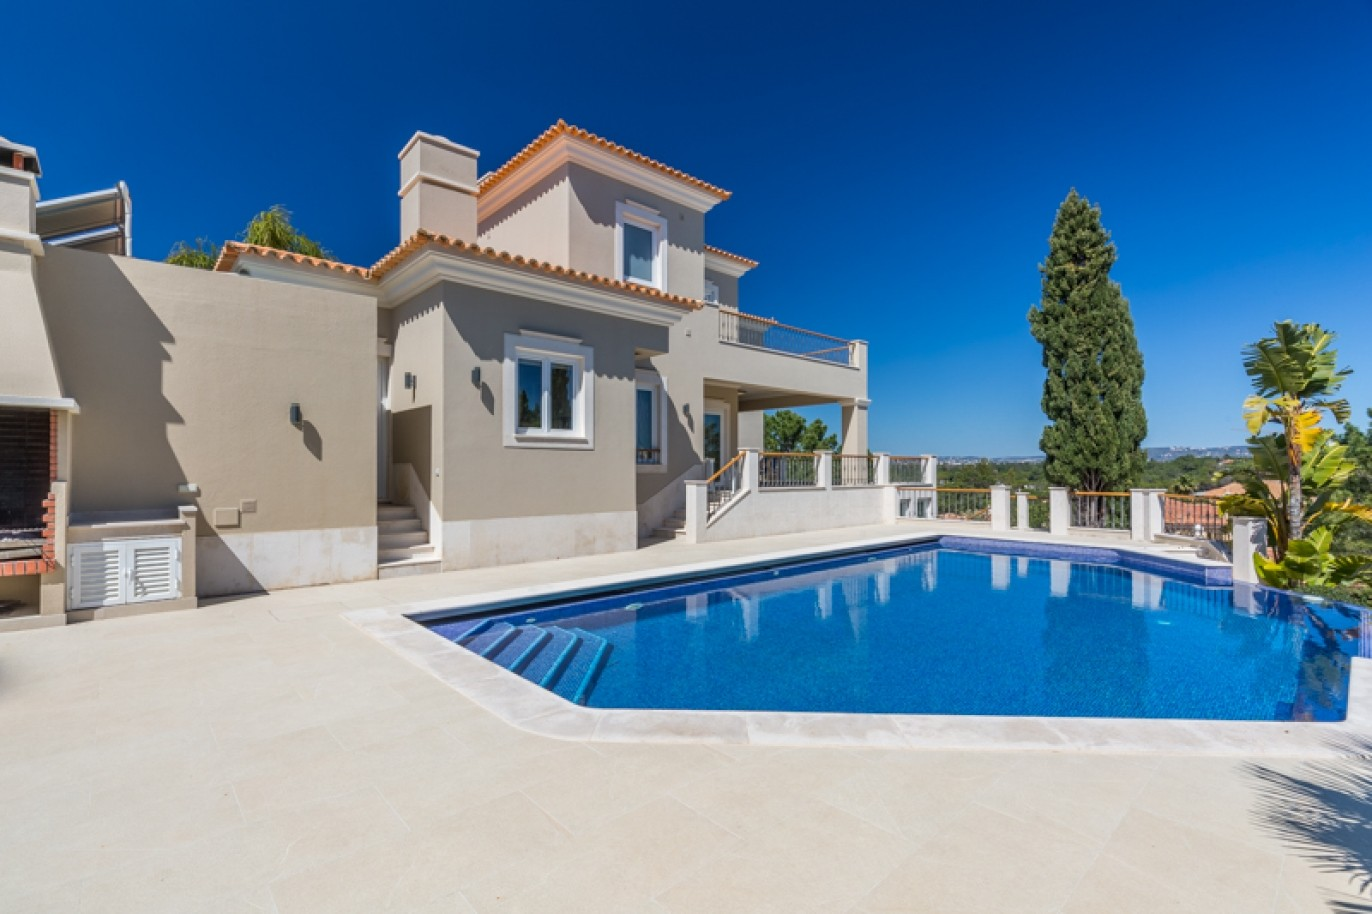 villa-house-quinta-do-lago